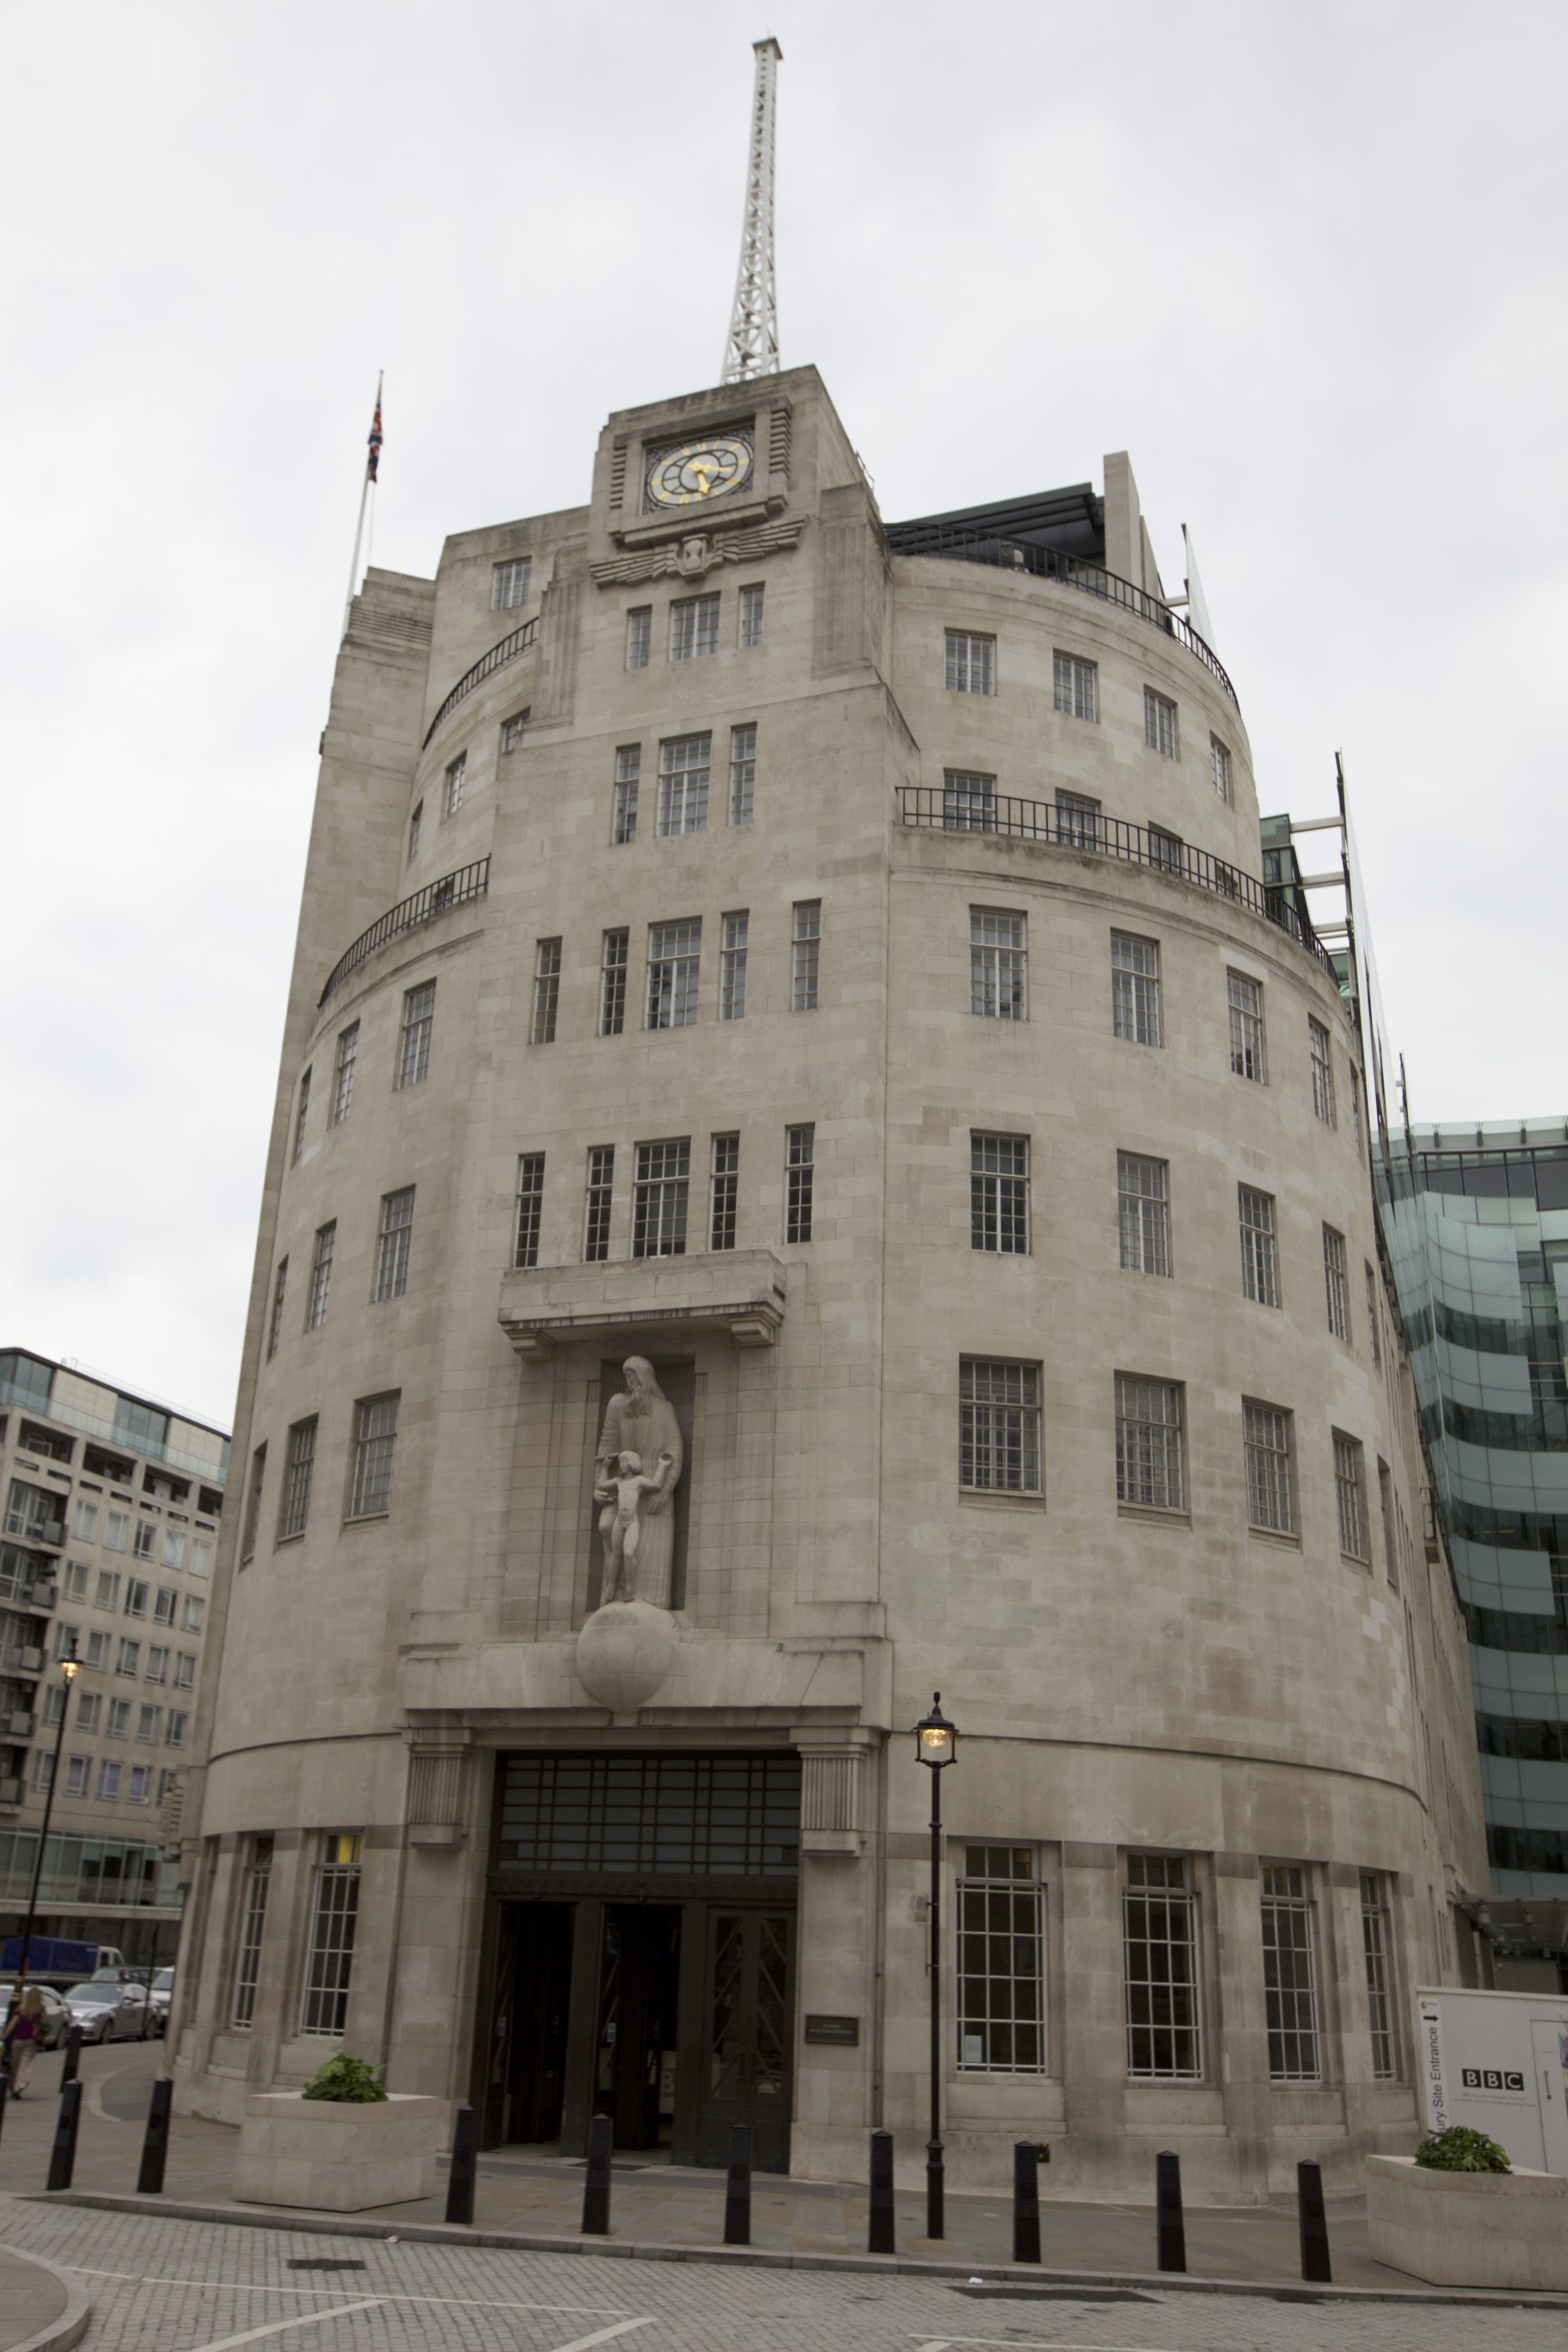 BBC Broadcasting House, the first purpose-built radio broadcast building in the world.